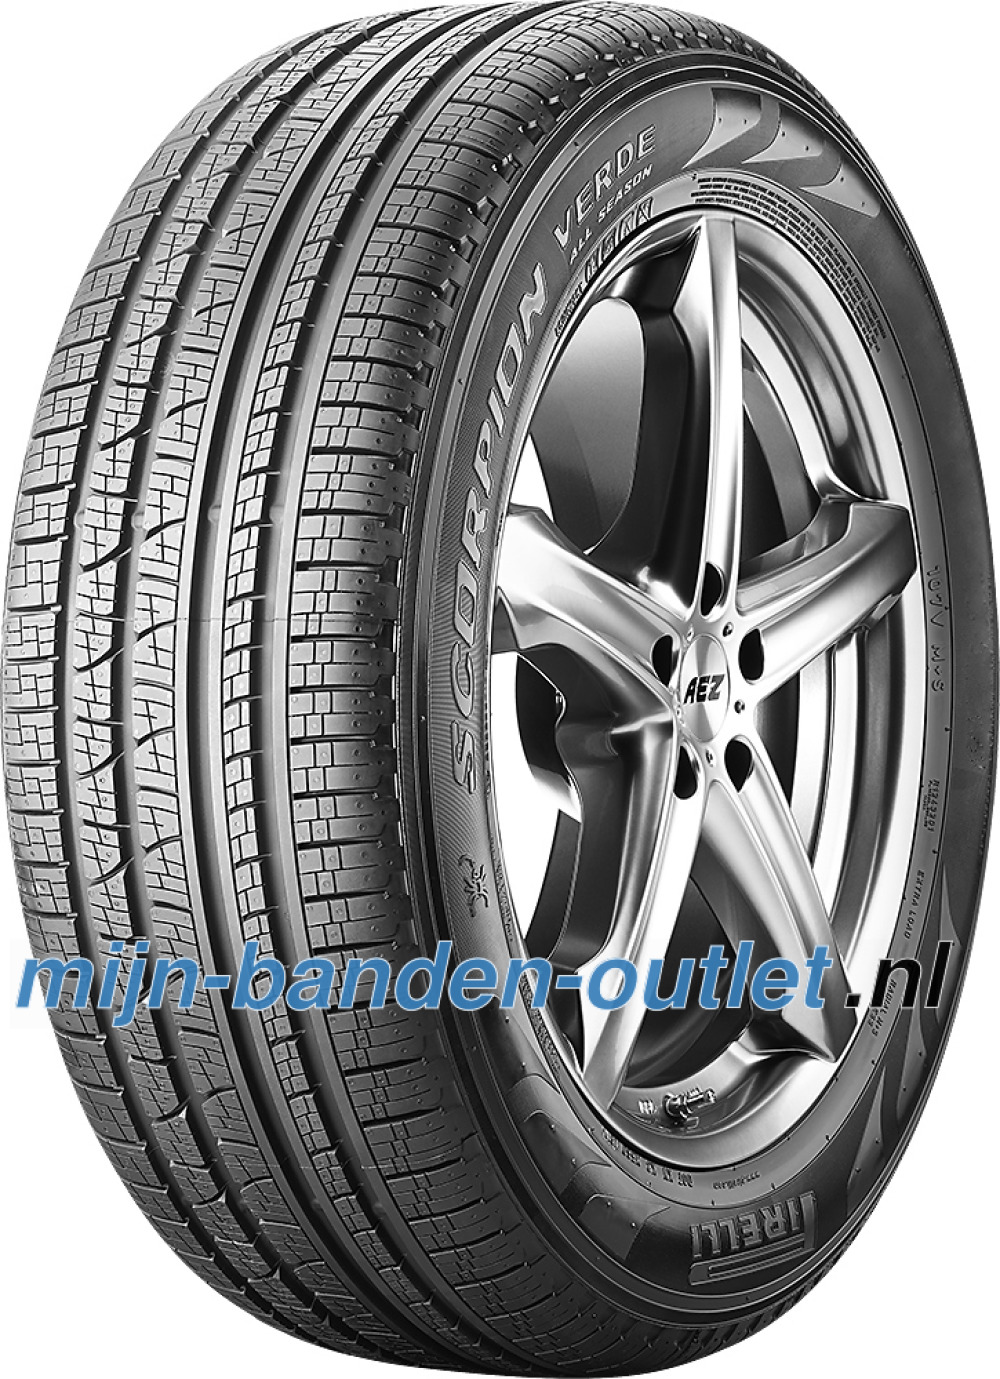 Pirelli Scorpion Verde All-Season ( 275/40 R21 107V XL VOL )